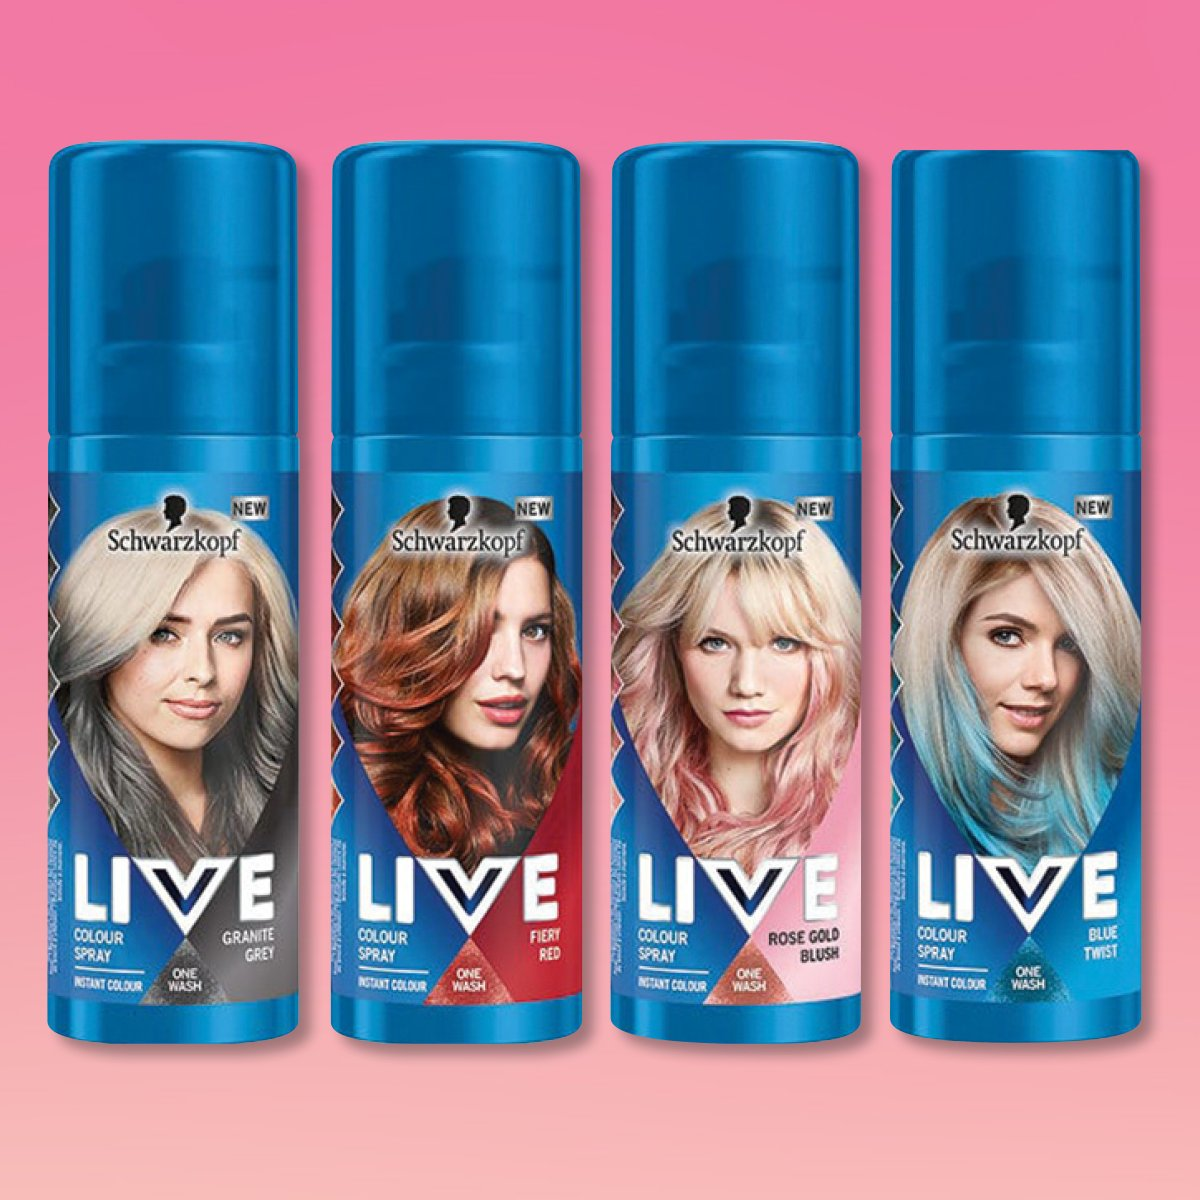 Savers On Twitter Want A Change From Your Normal Hair Colour Be